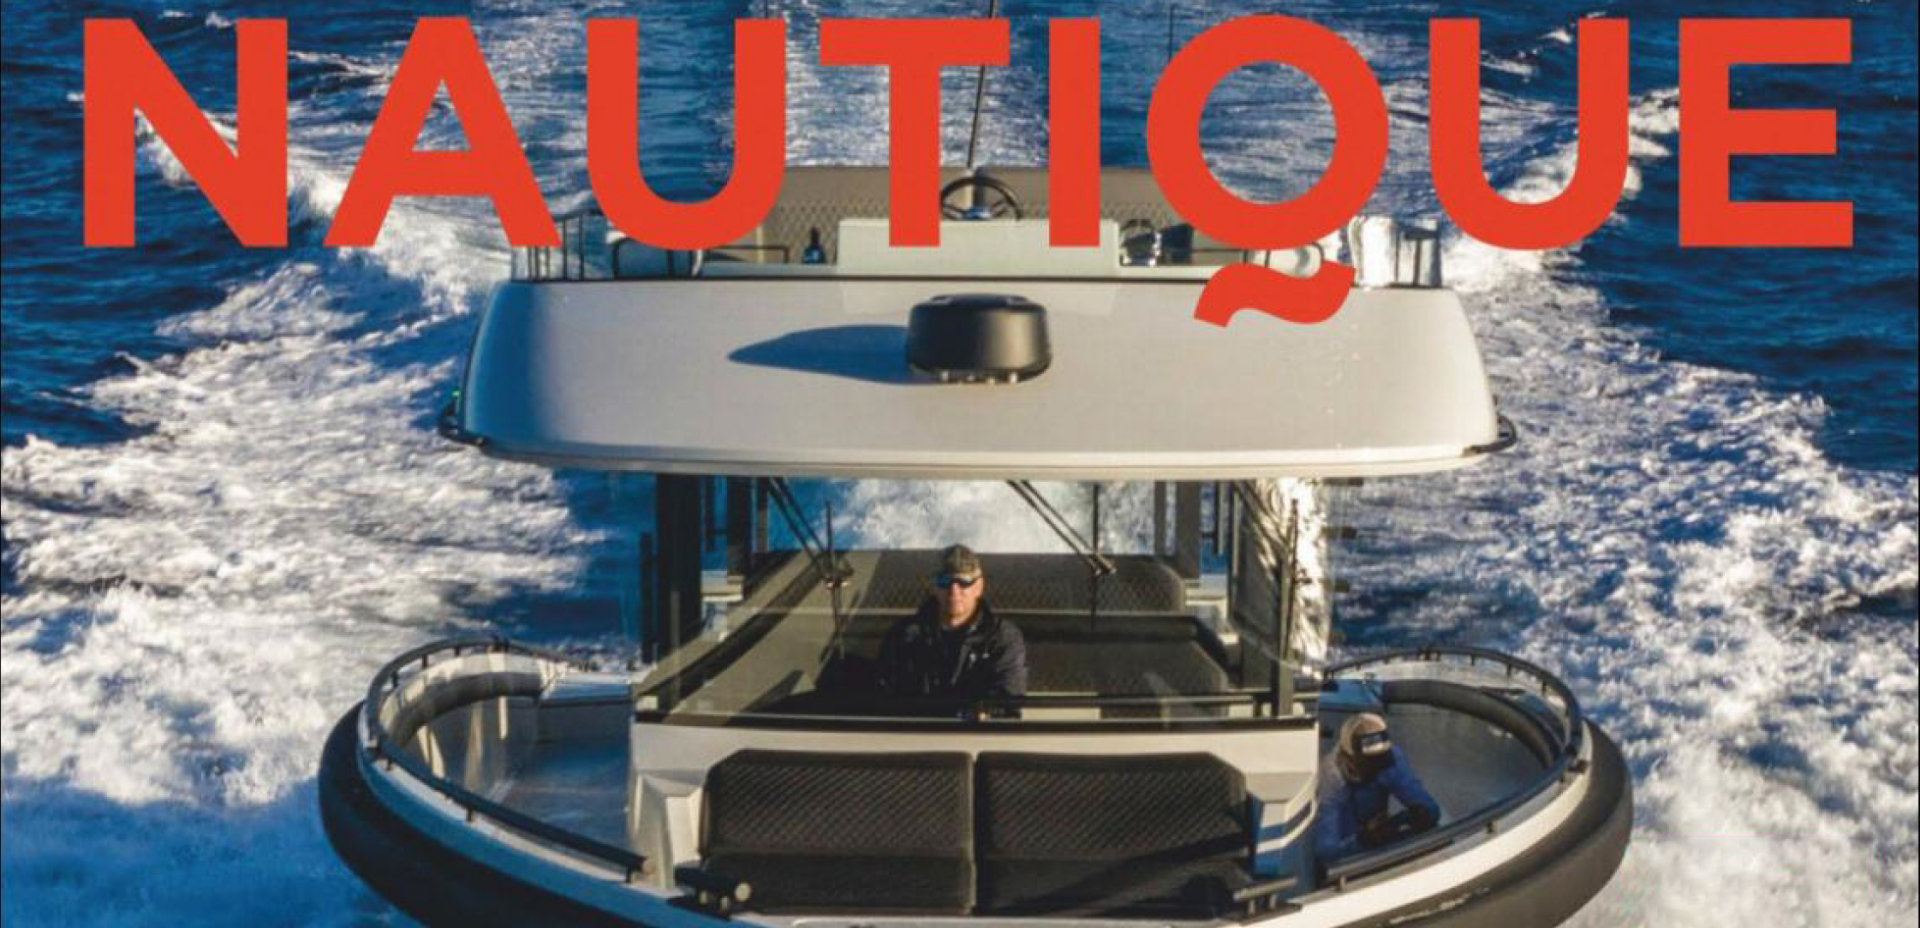 dutchcraft-56-nautique-cover-featuring-Chris-Holtzheuser